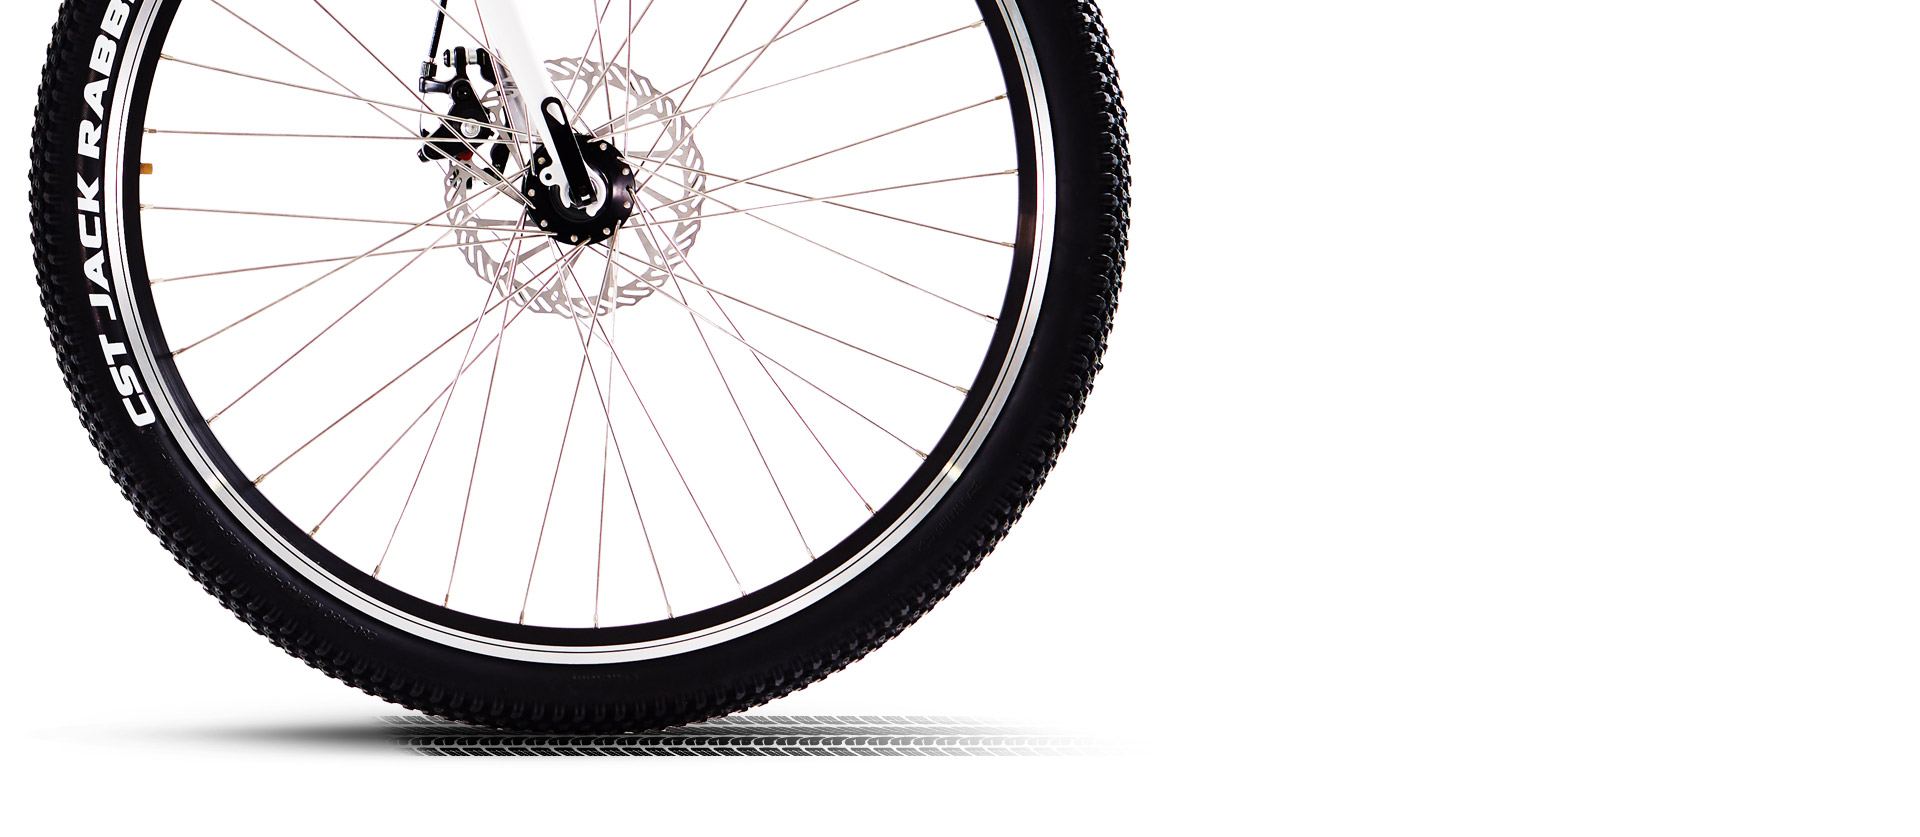 Airwheel R8 tires